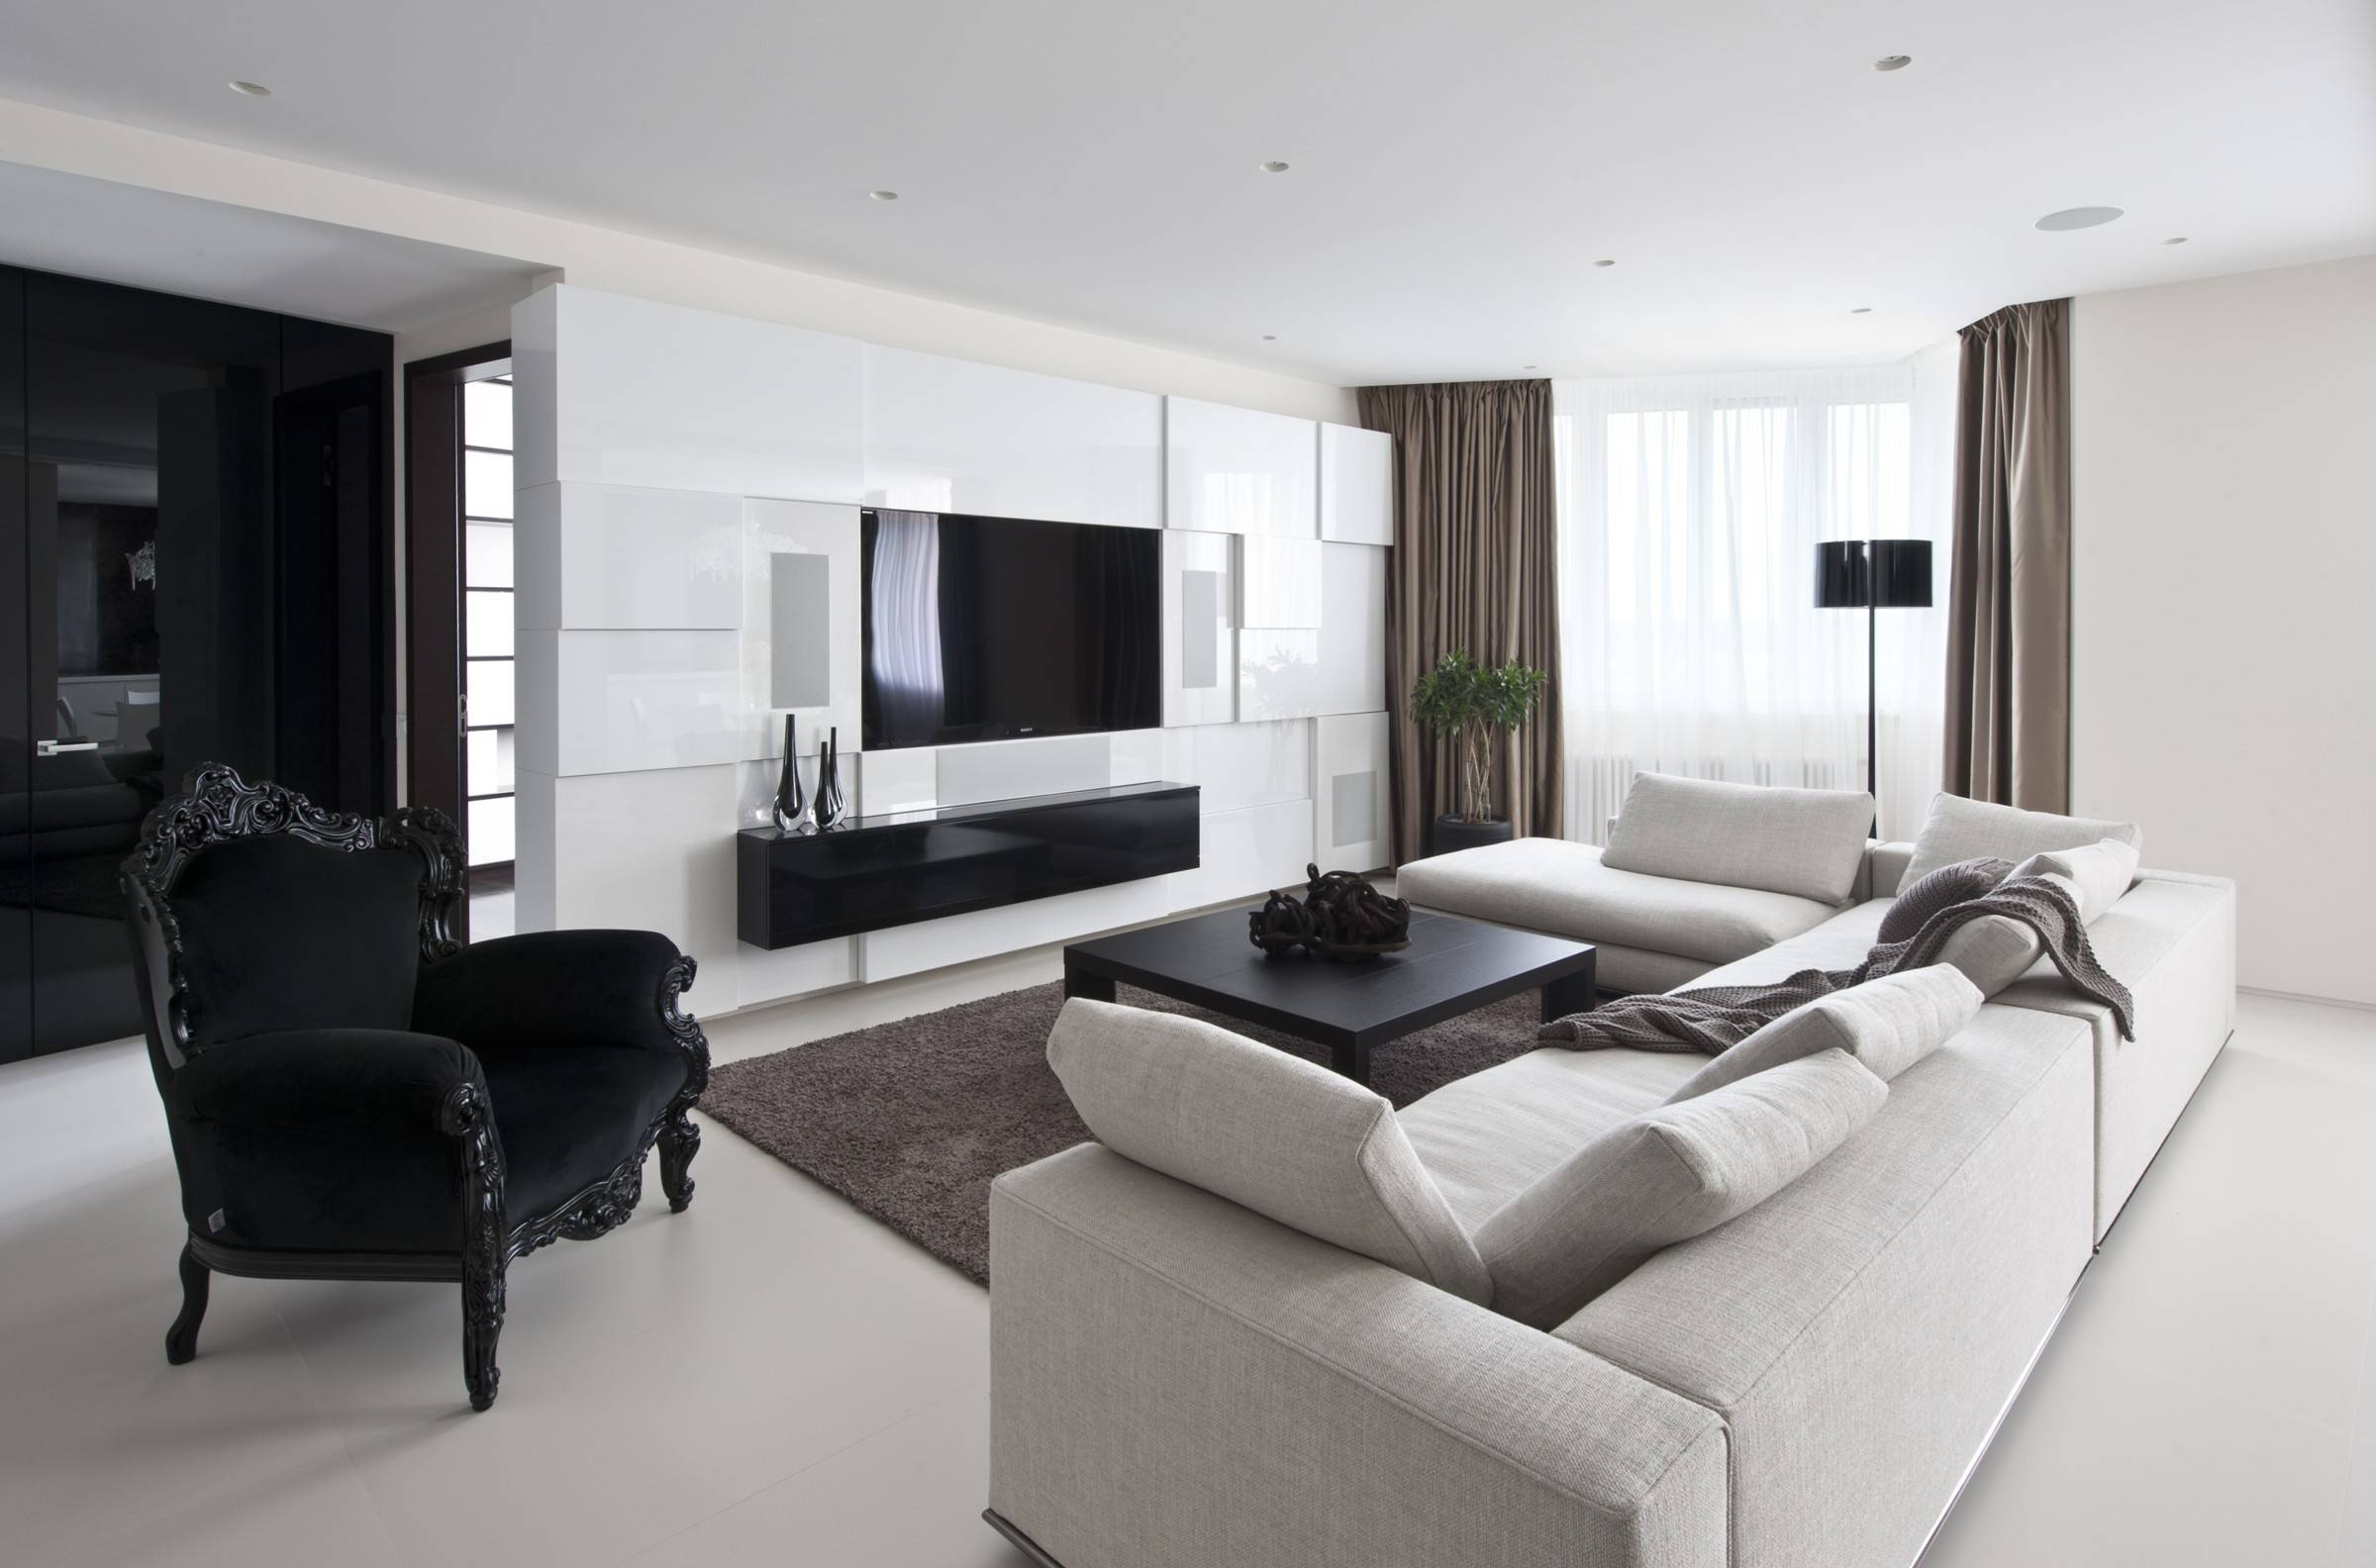 Lovely White Color Accent On Large Wardrobe With Nice Black in Sofas Black and White Colors (Image 10 of 15)